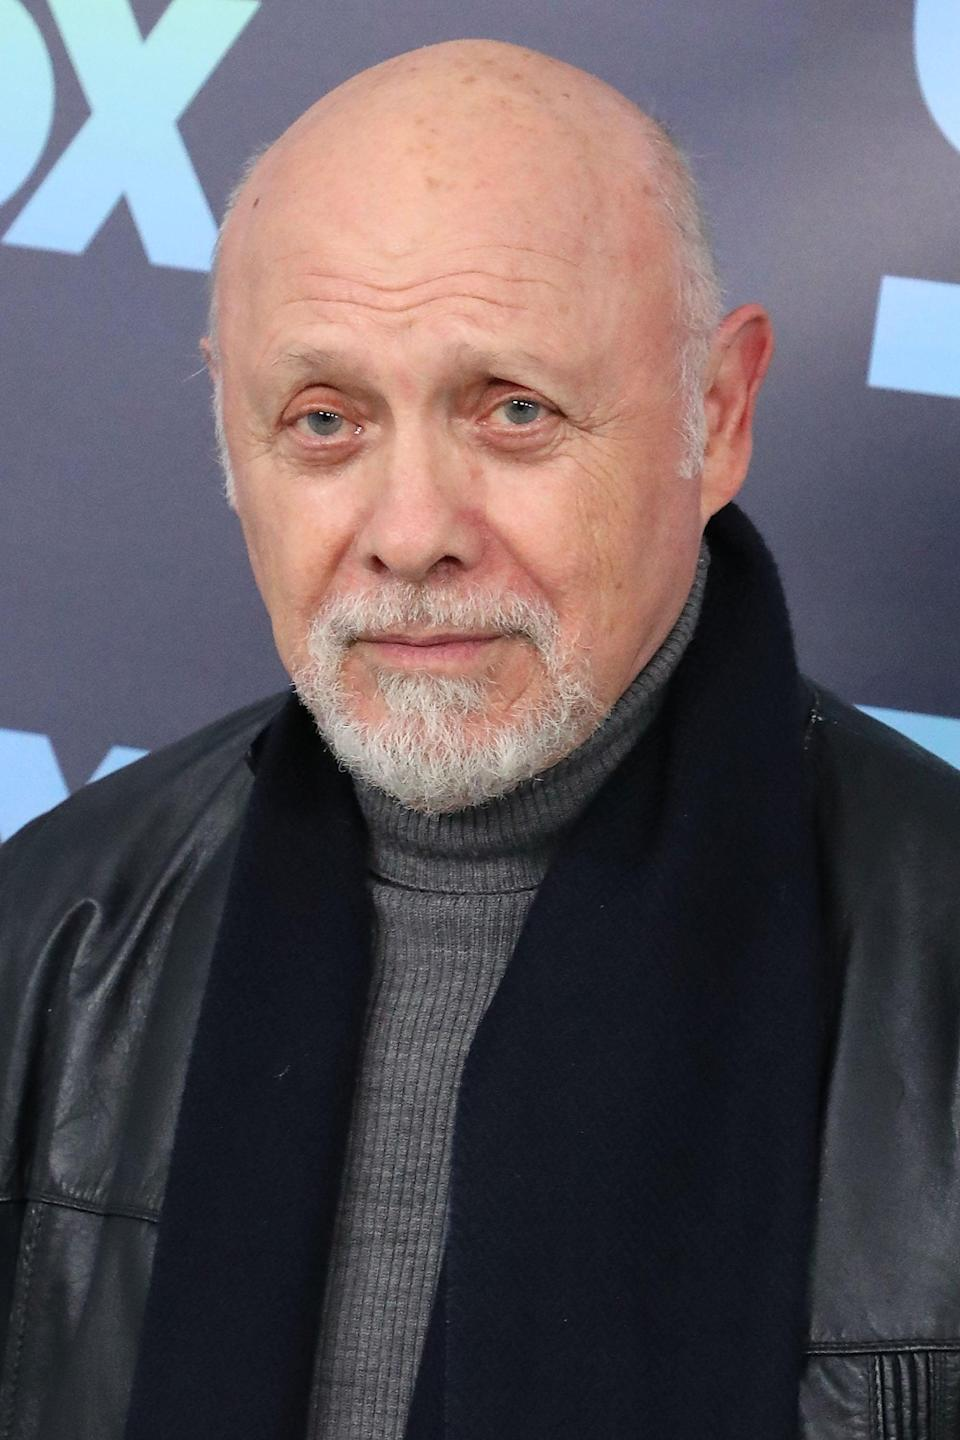 "<p>After capturing Queen Clarisse Renaldi's heart (and all of ours!), Hector Elizondo turned his focus to television. From recurring roles in <strong>Monk </strong>and <strong><a href=""https://www.popsugar.com/Grey's-Anatomy"" class=""link rapid-noclick-resp"" rel=""nofollow noopener"" target=""_blank"" data-ylk=""slk:Grey's Anatomy"">Grey's Anatomy</a></strong> to guest appearances on <strong>Last Man Standing</strong>, 83-year-old Elizondo seems to have forever hung up his royal chauffeur cap. </p>"